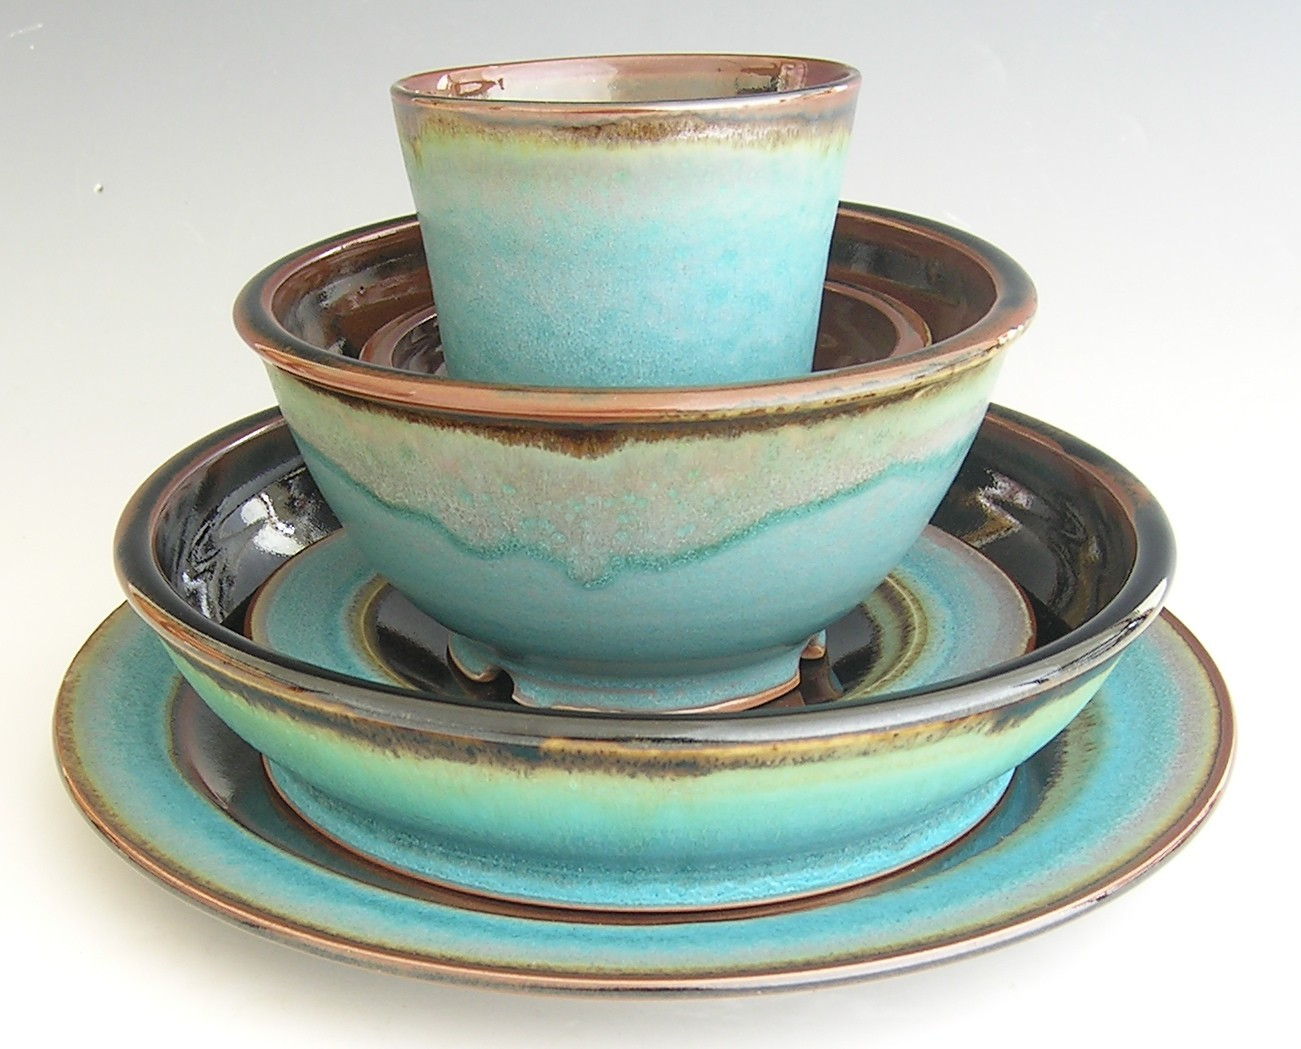 Italian Dinnerware Sets | Colorful Dinnerware Sets | Stoneware Dinnerware Sets